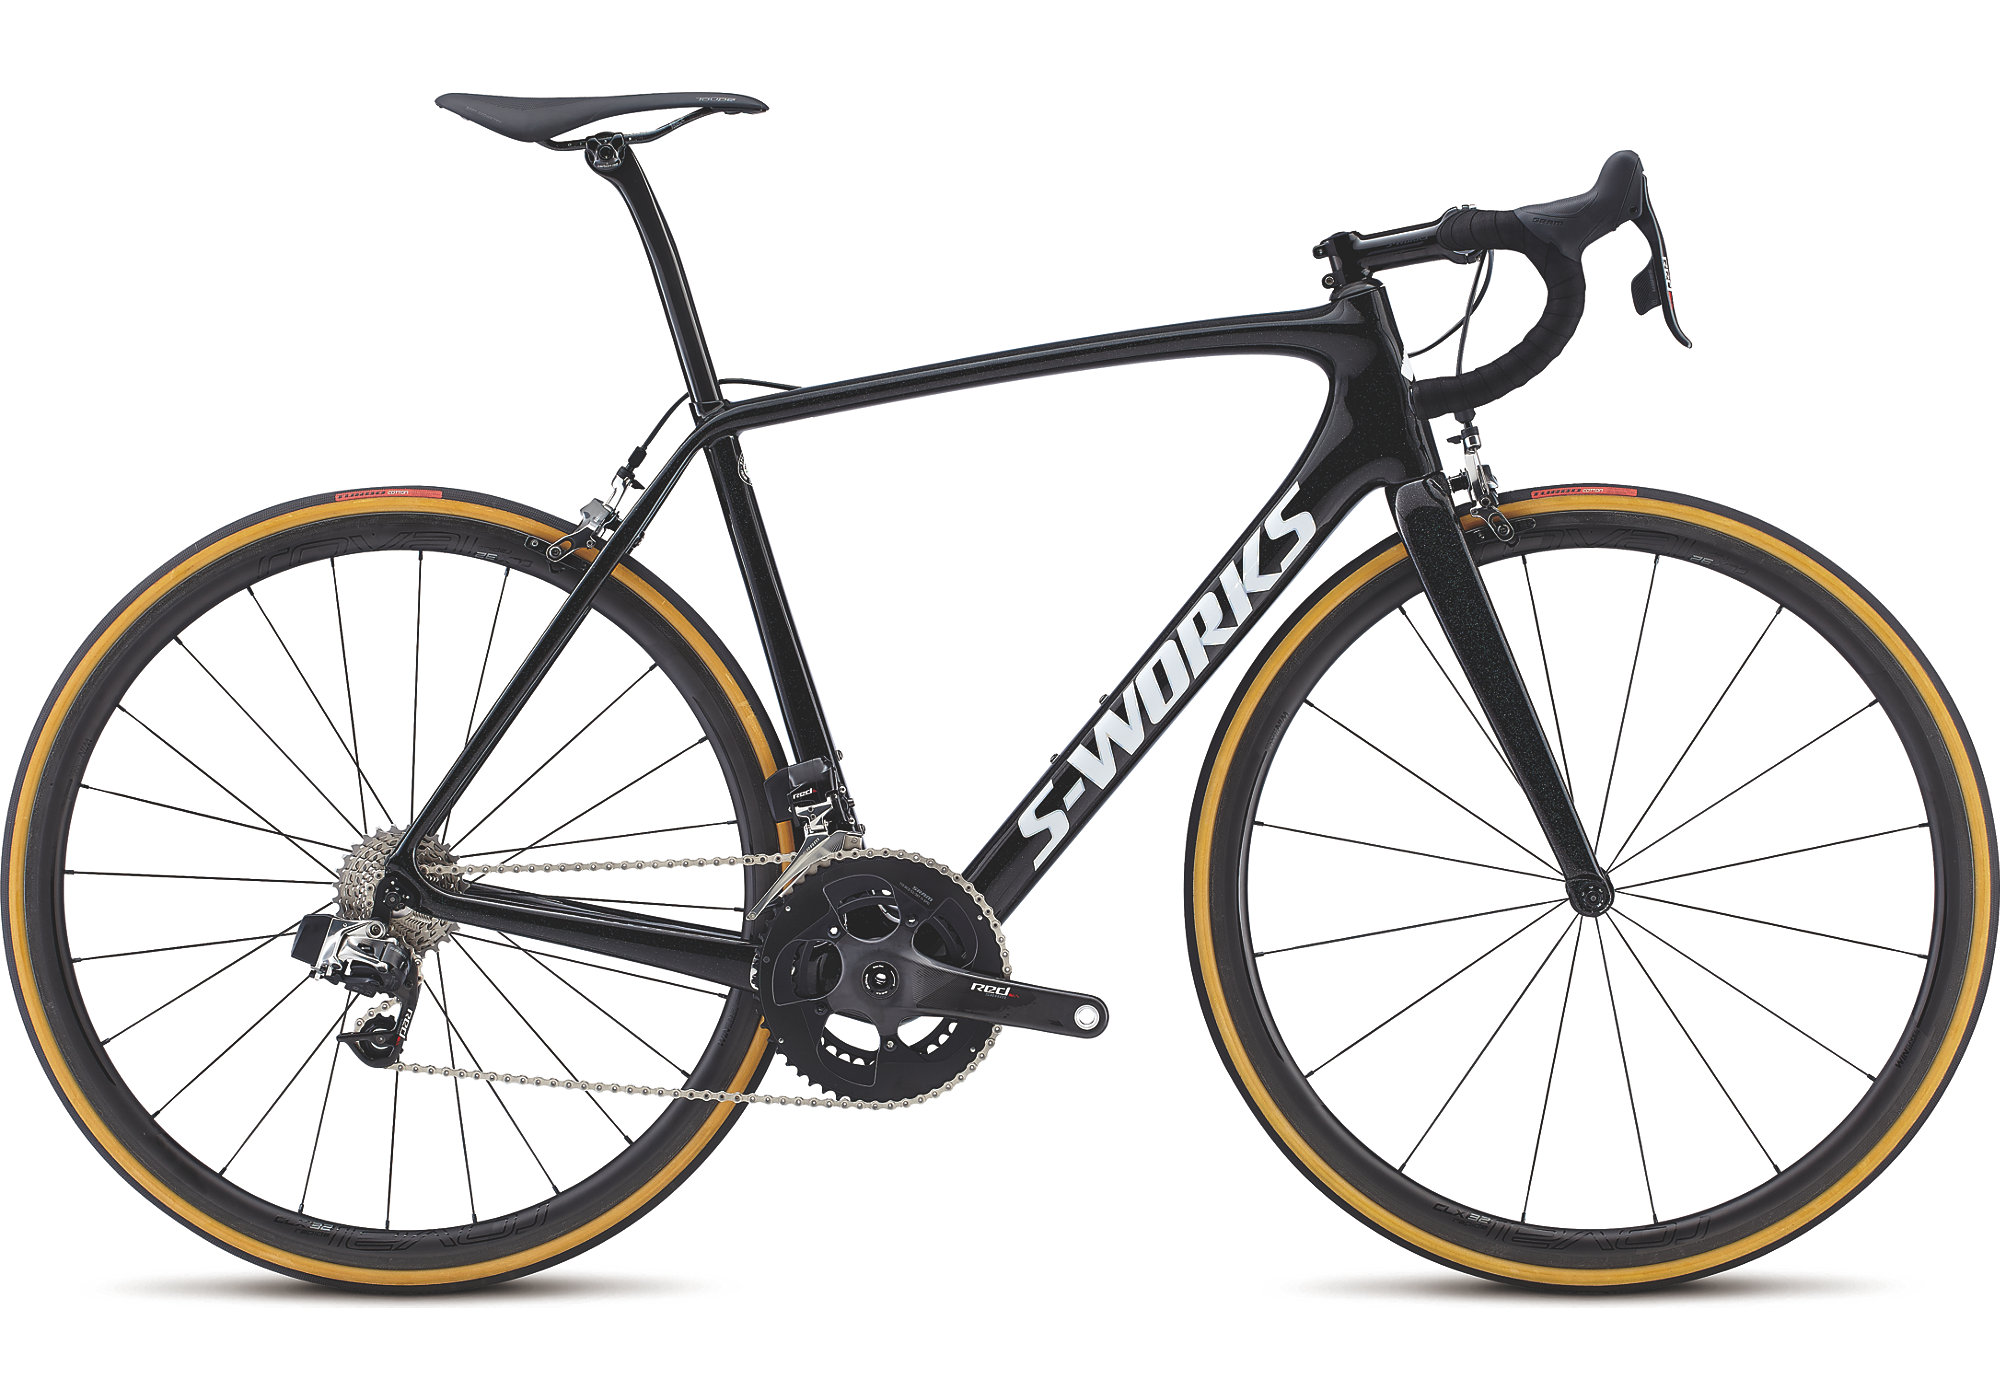 4738dfc778c Specialized S-Works Tarmac Etap in Gloss Black/White/Clean £6,587.50